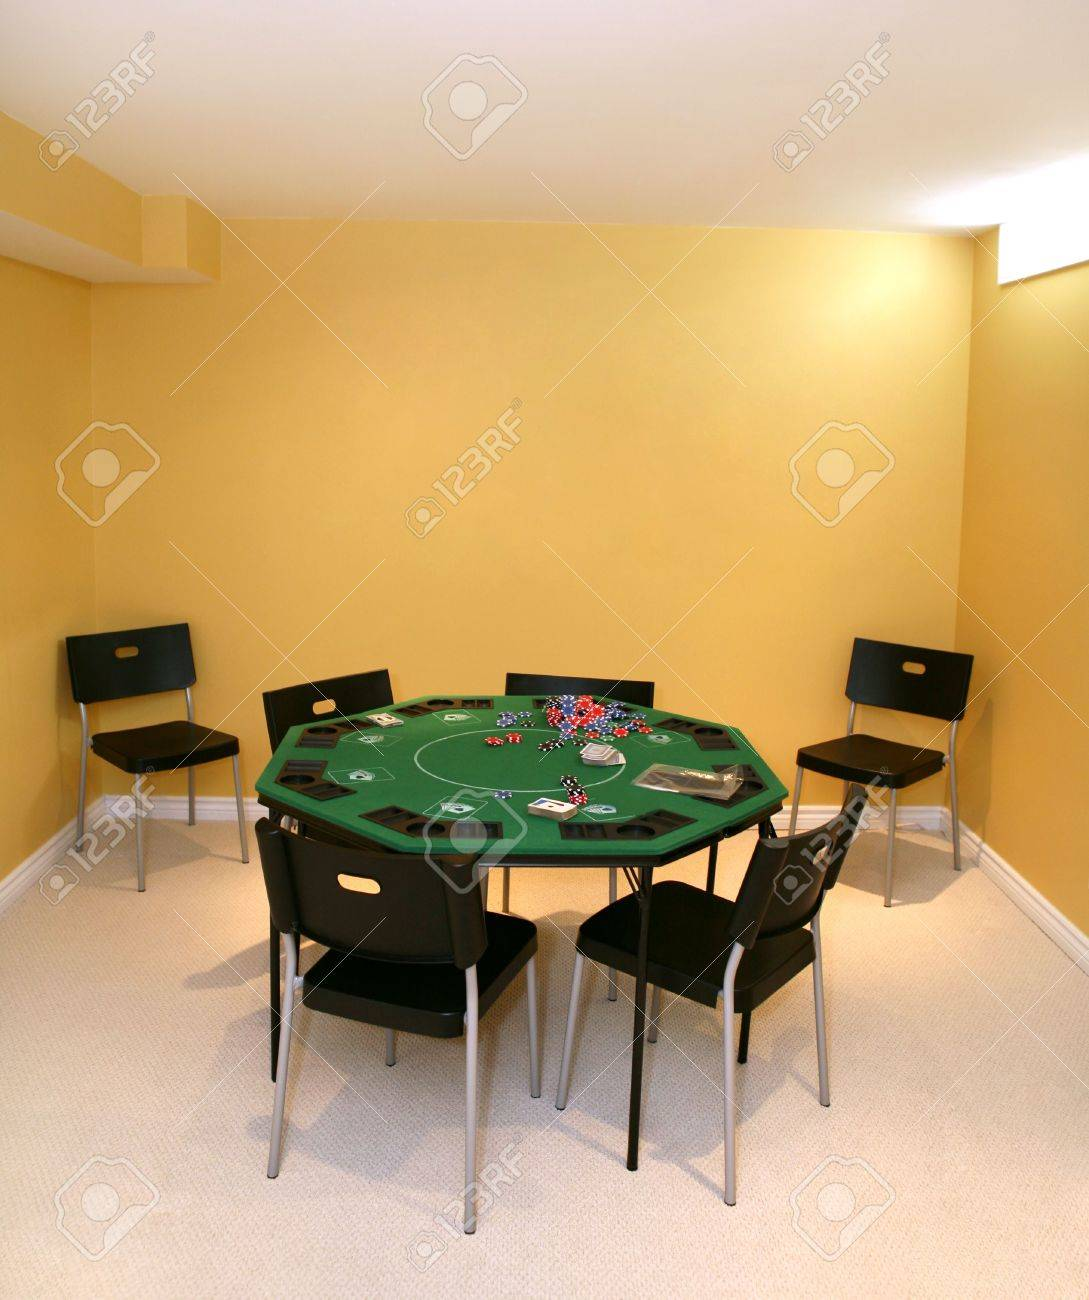 Poker Table With Cards And Chips In The Basement Stock Photo